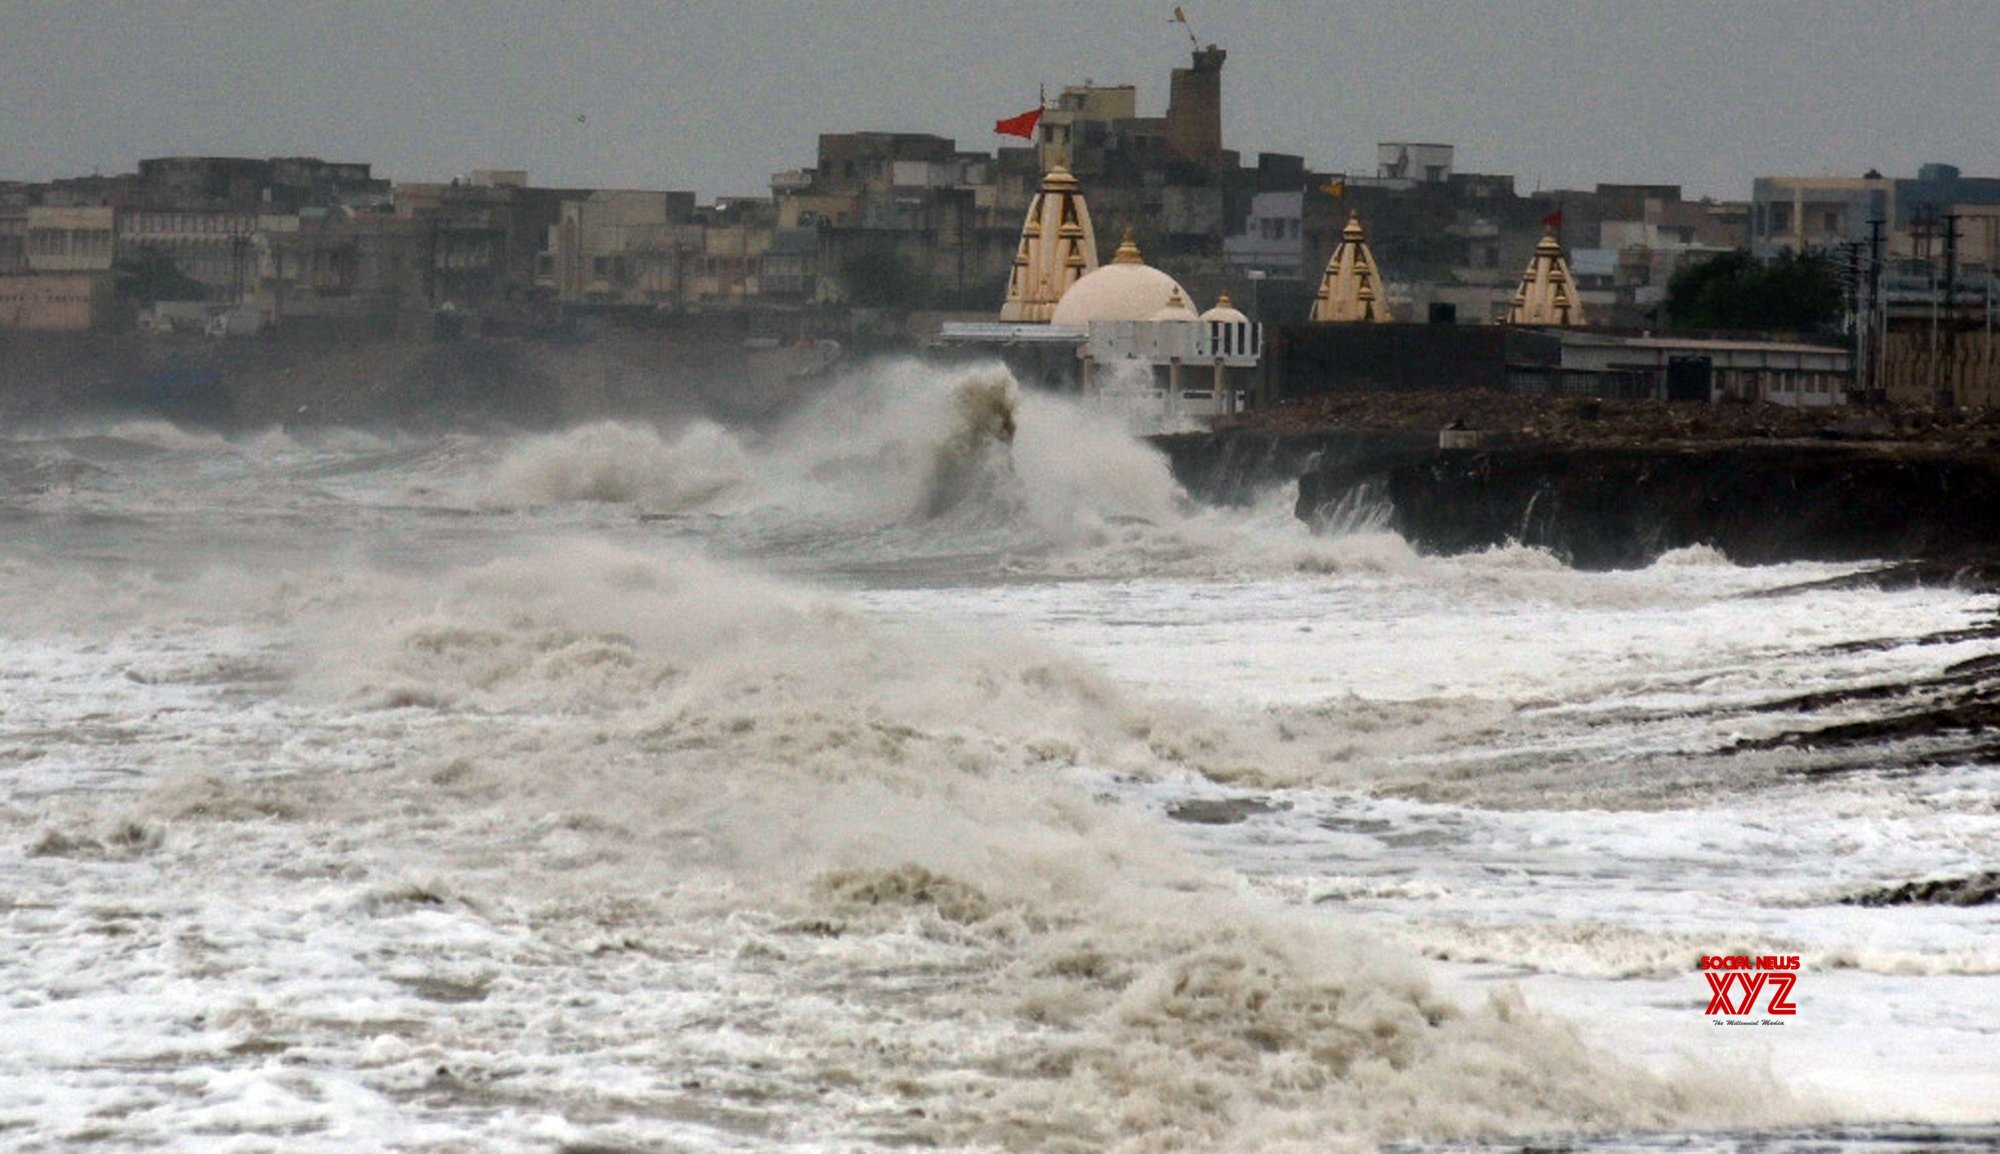 Cyclone Vayu: Flights to resume across 5 airports in Gujarat